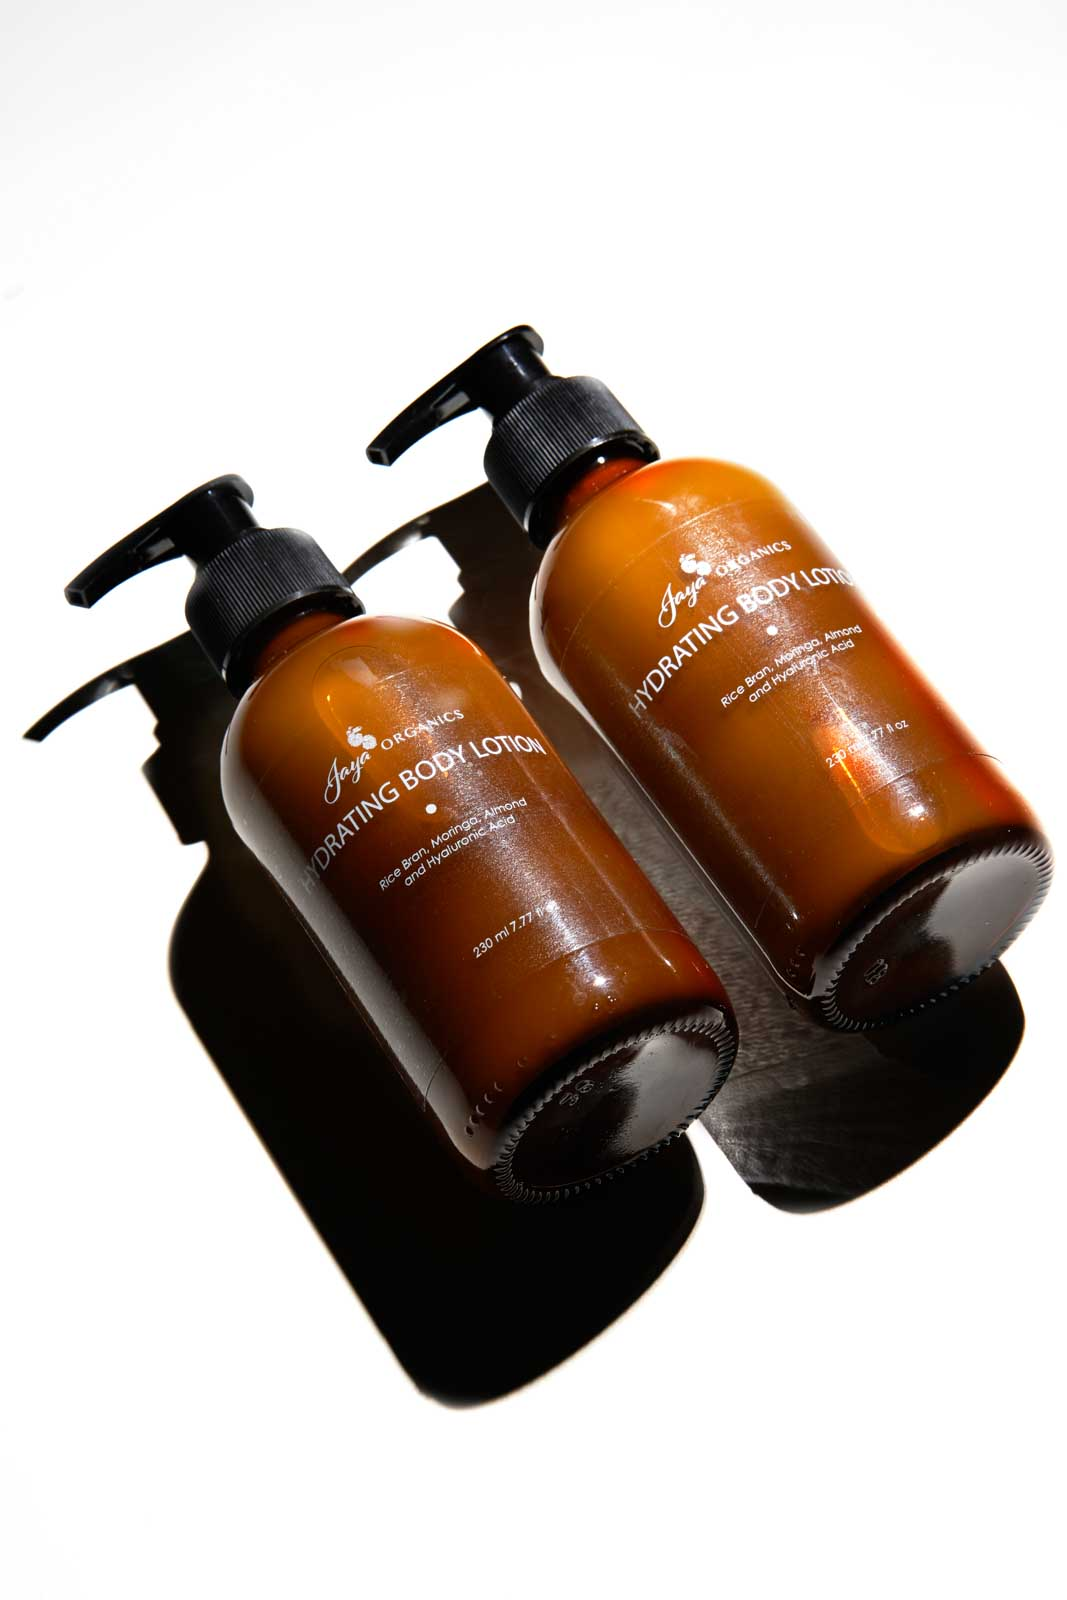 Jaya Organics Body Lotion